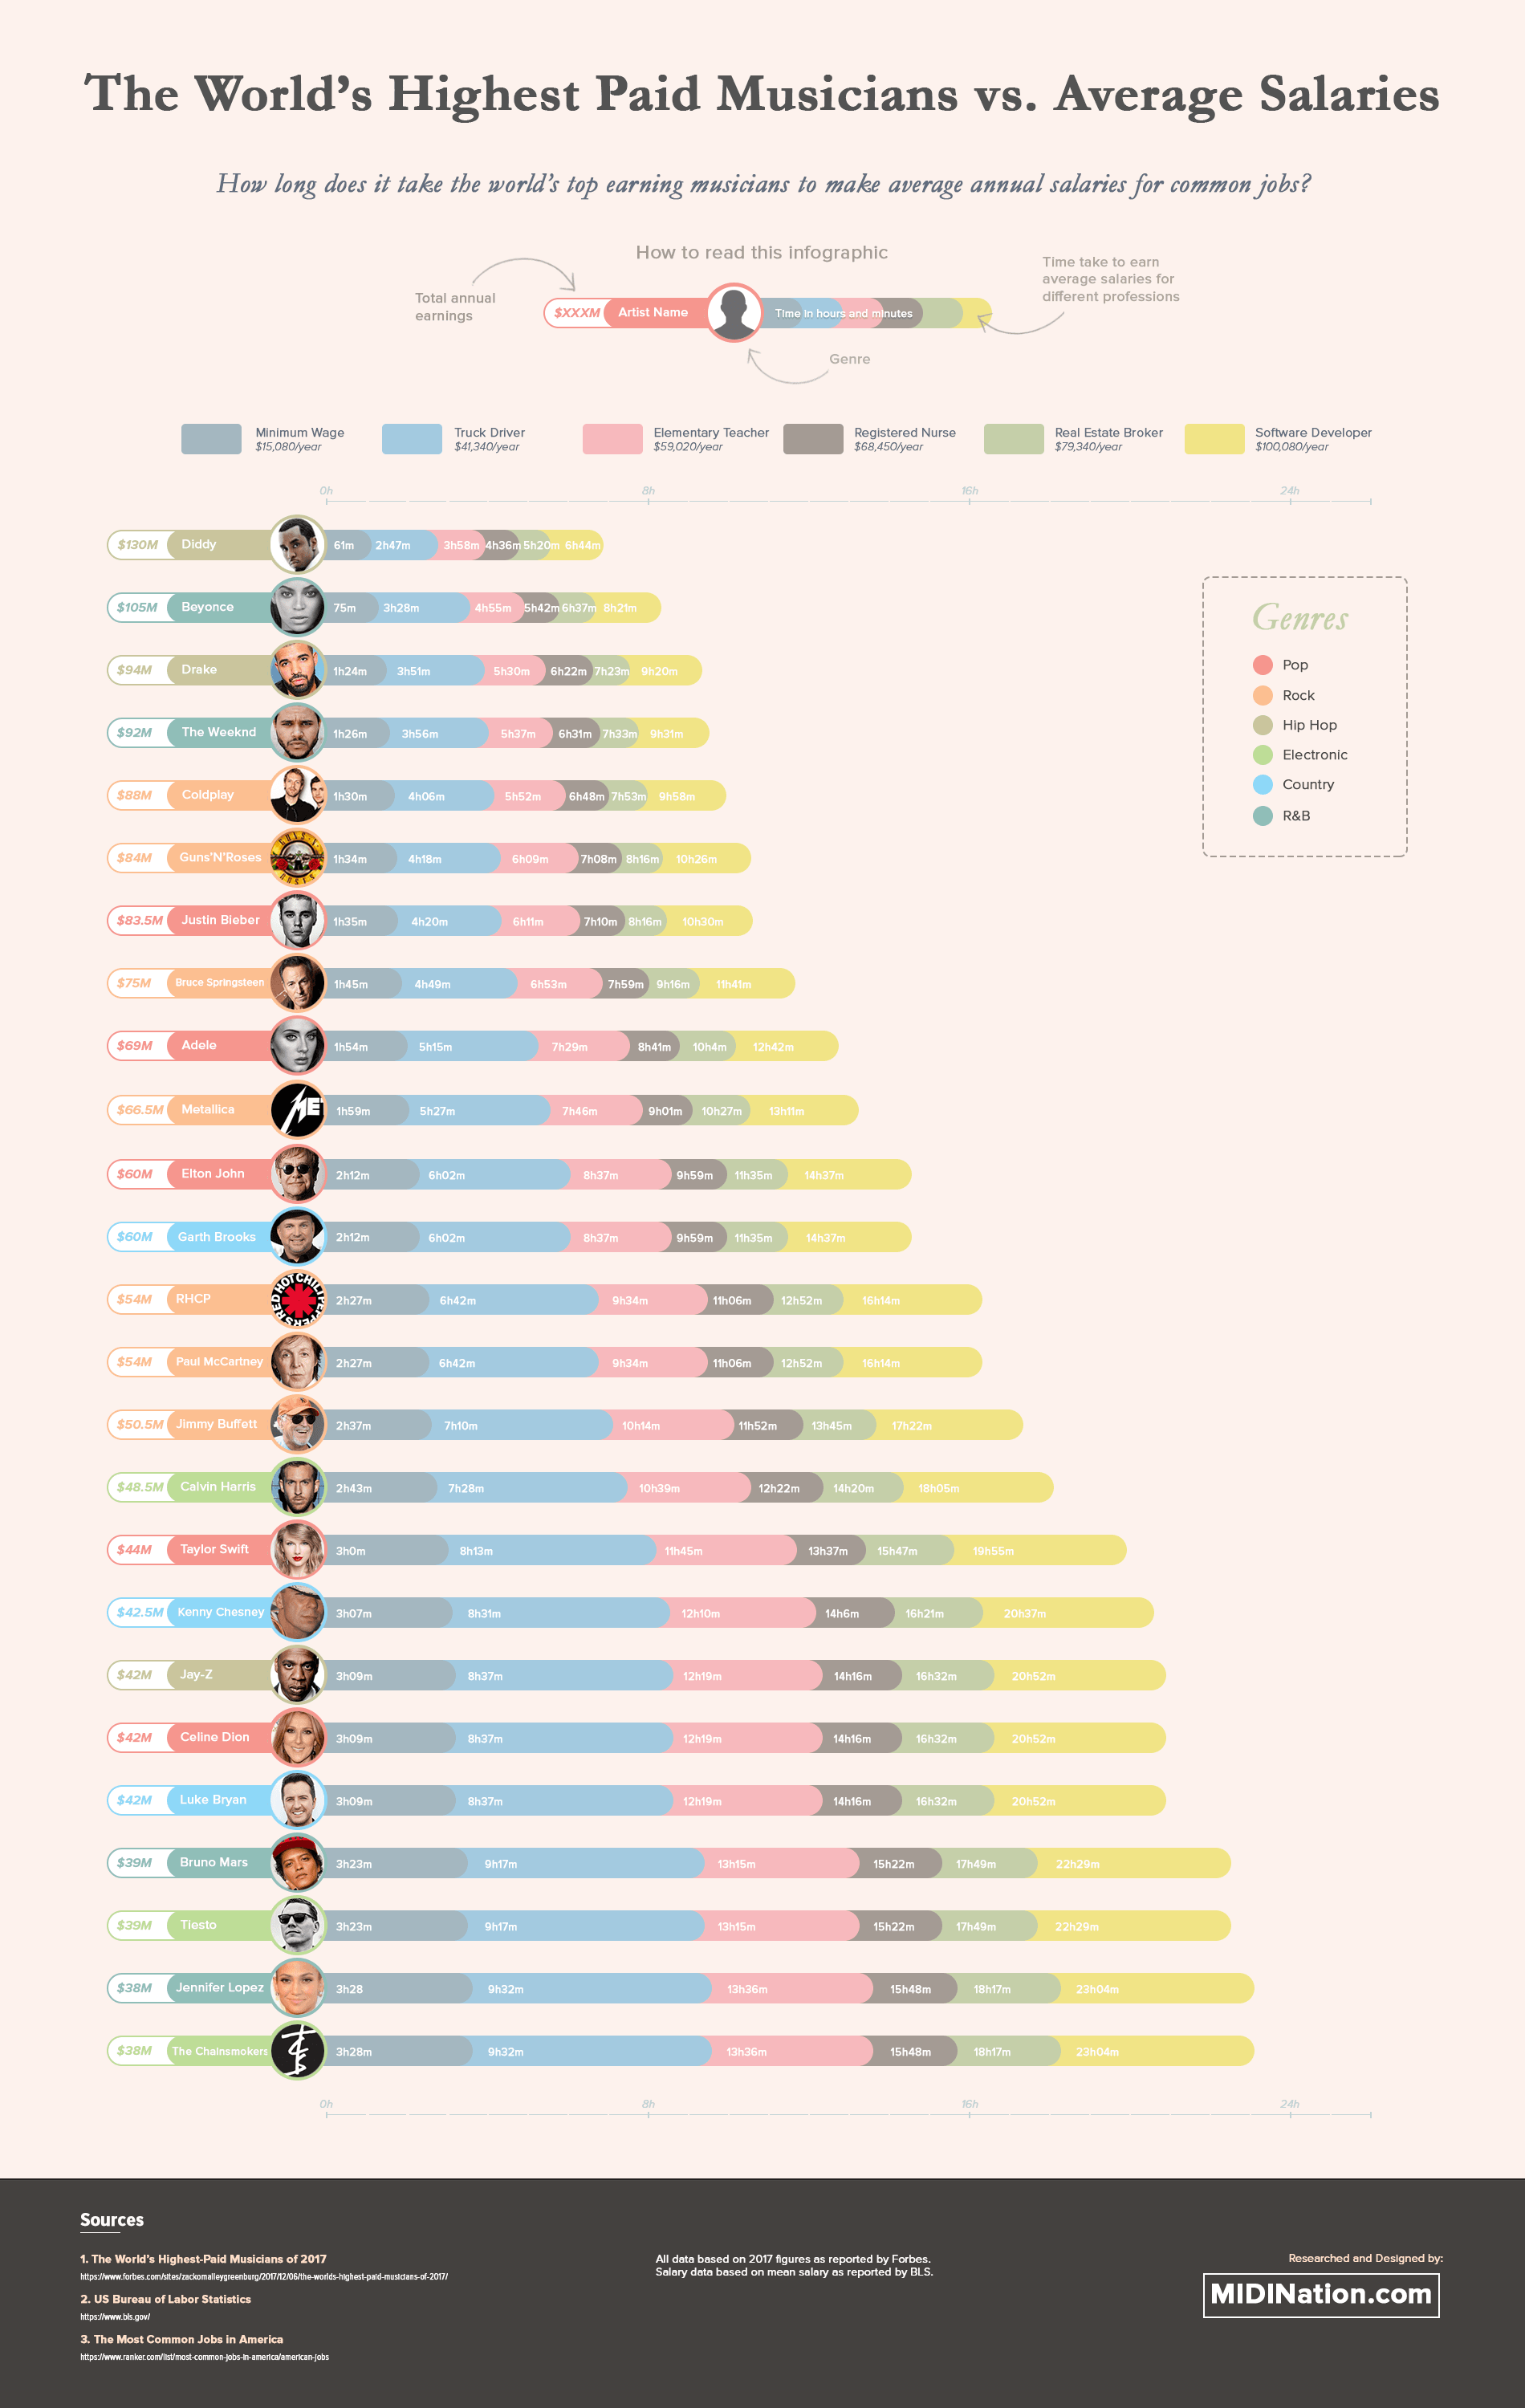 How Quickly Do Top Musicians Make Average Salaries